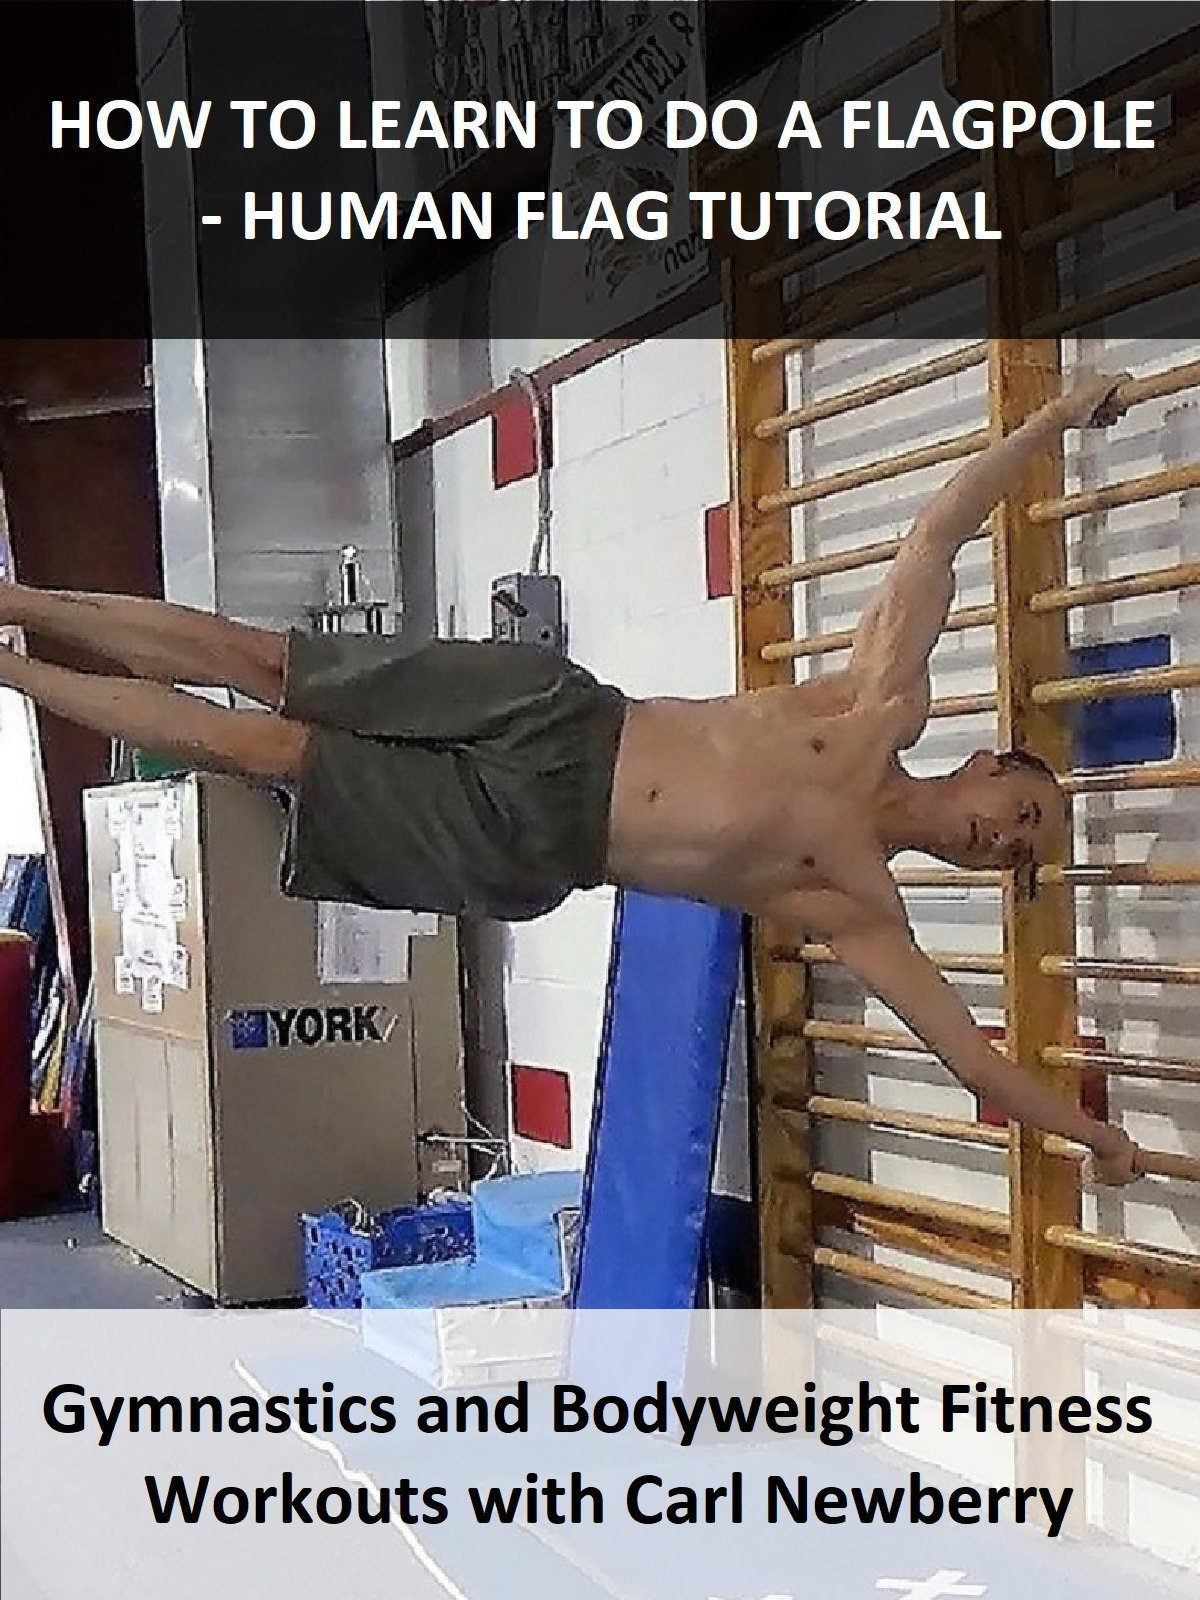 How To Learn To Do a Flagpole